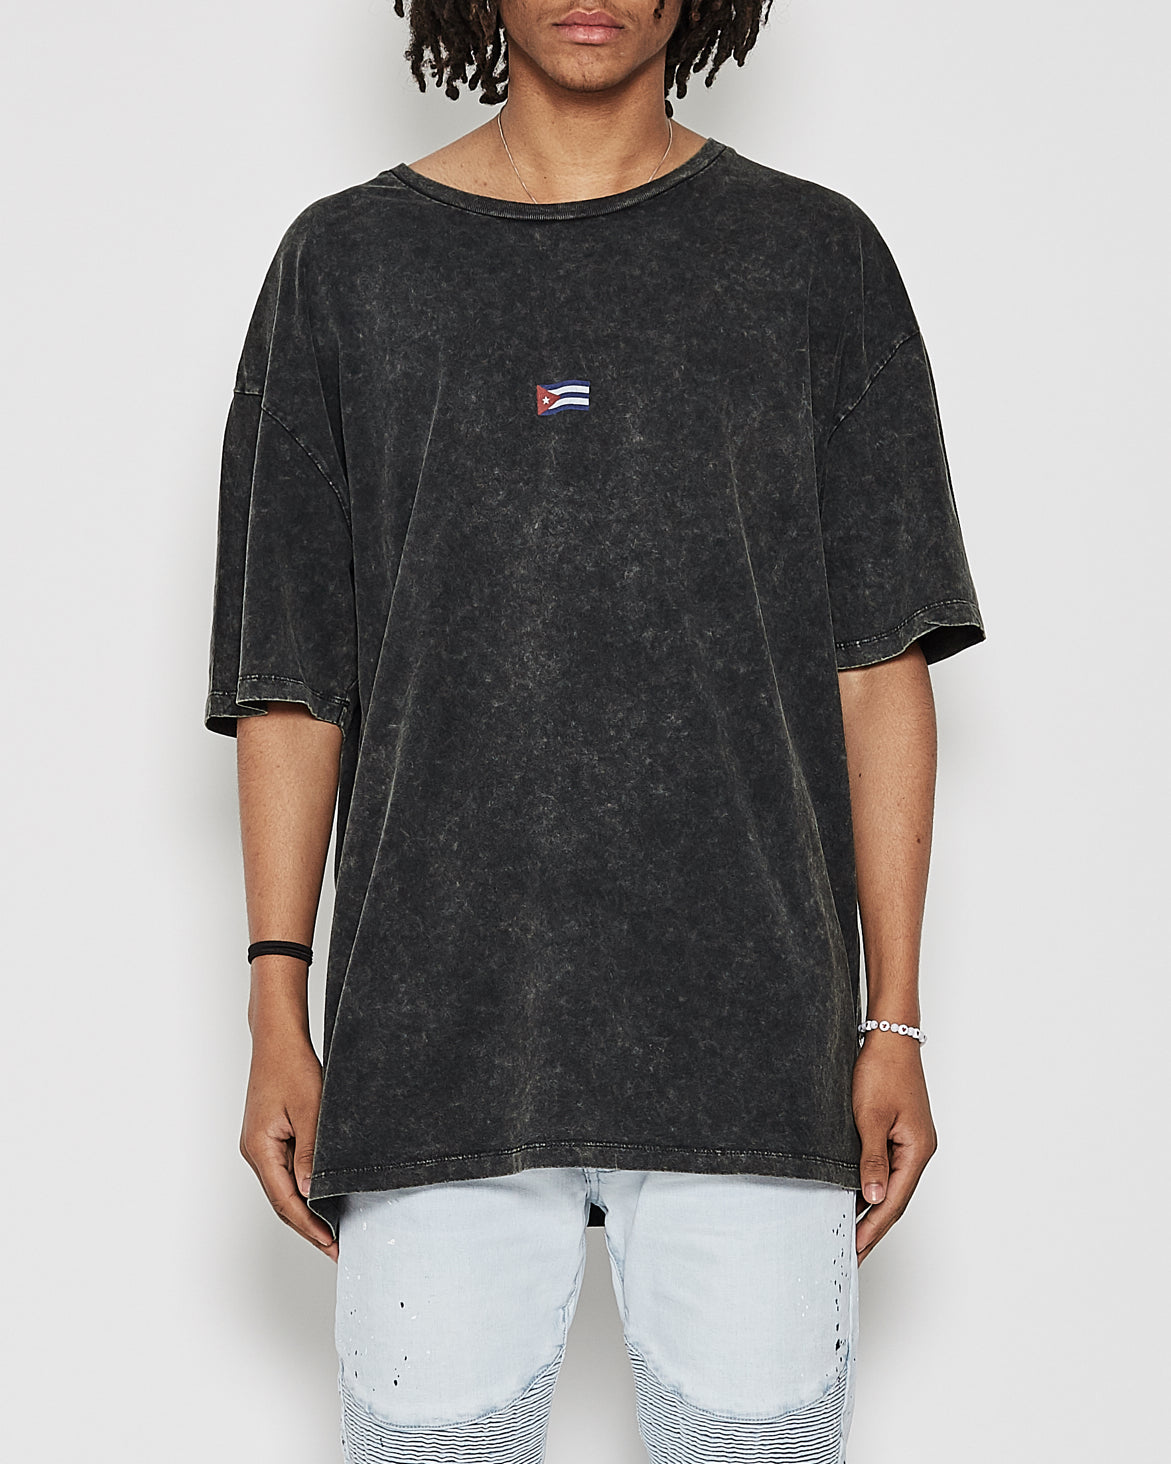 Republica Big Fit Tee Metal Black